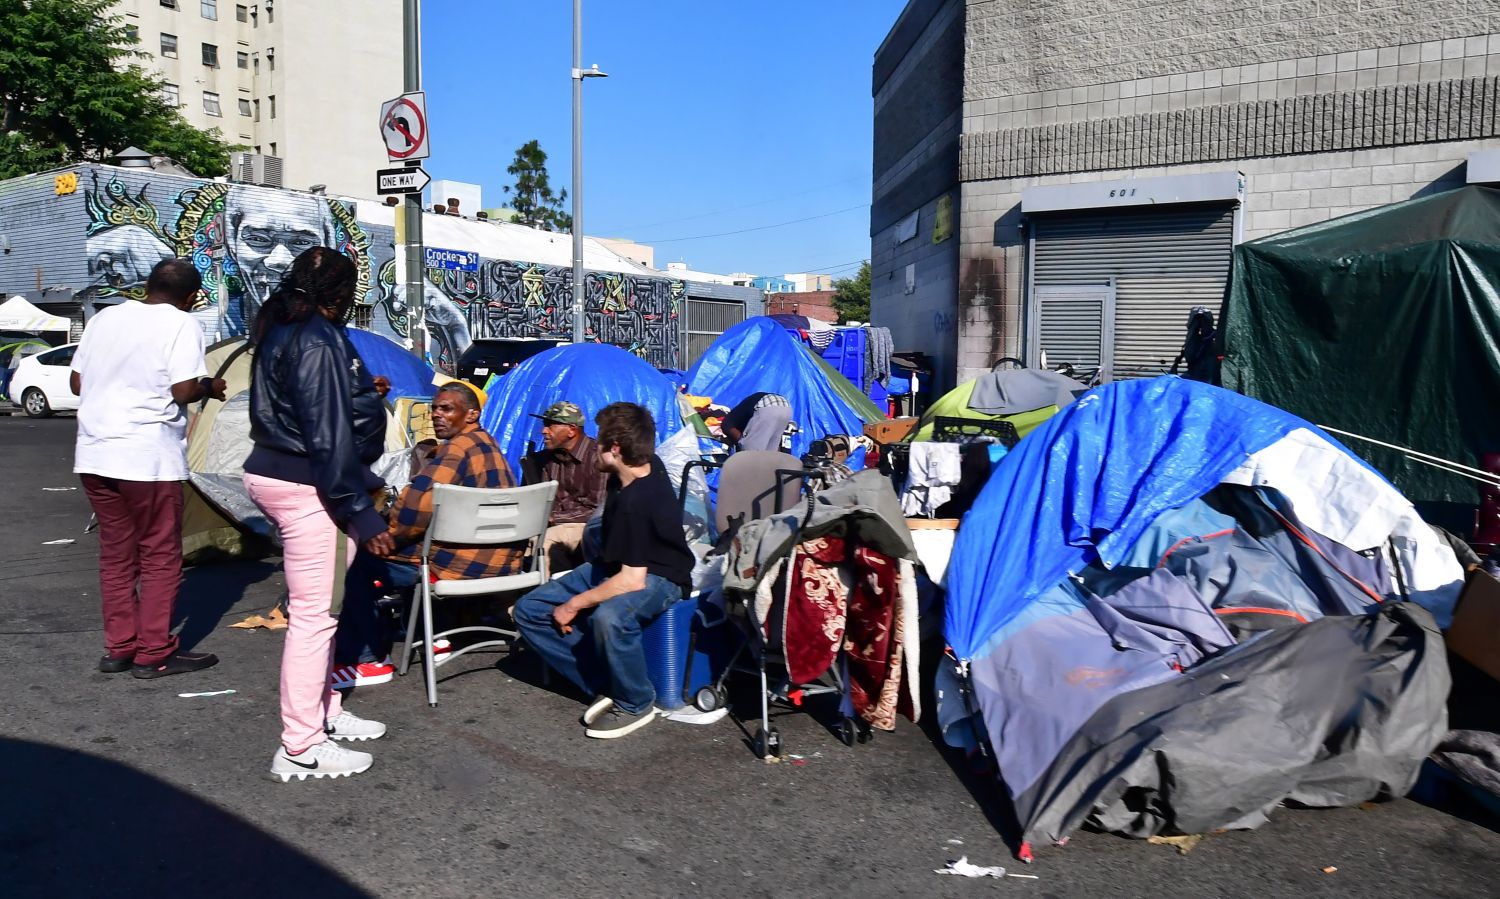 LA Councilman David Ryu Proposes Overnight Parking Lot For Homeless Population